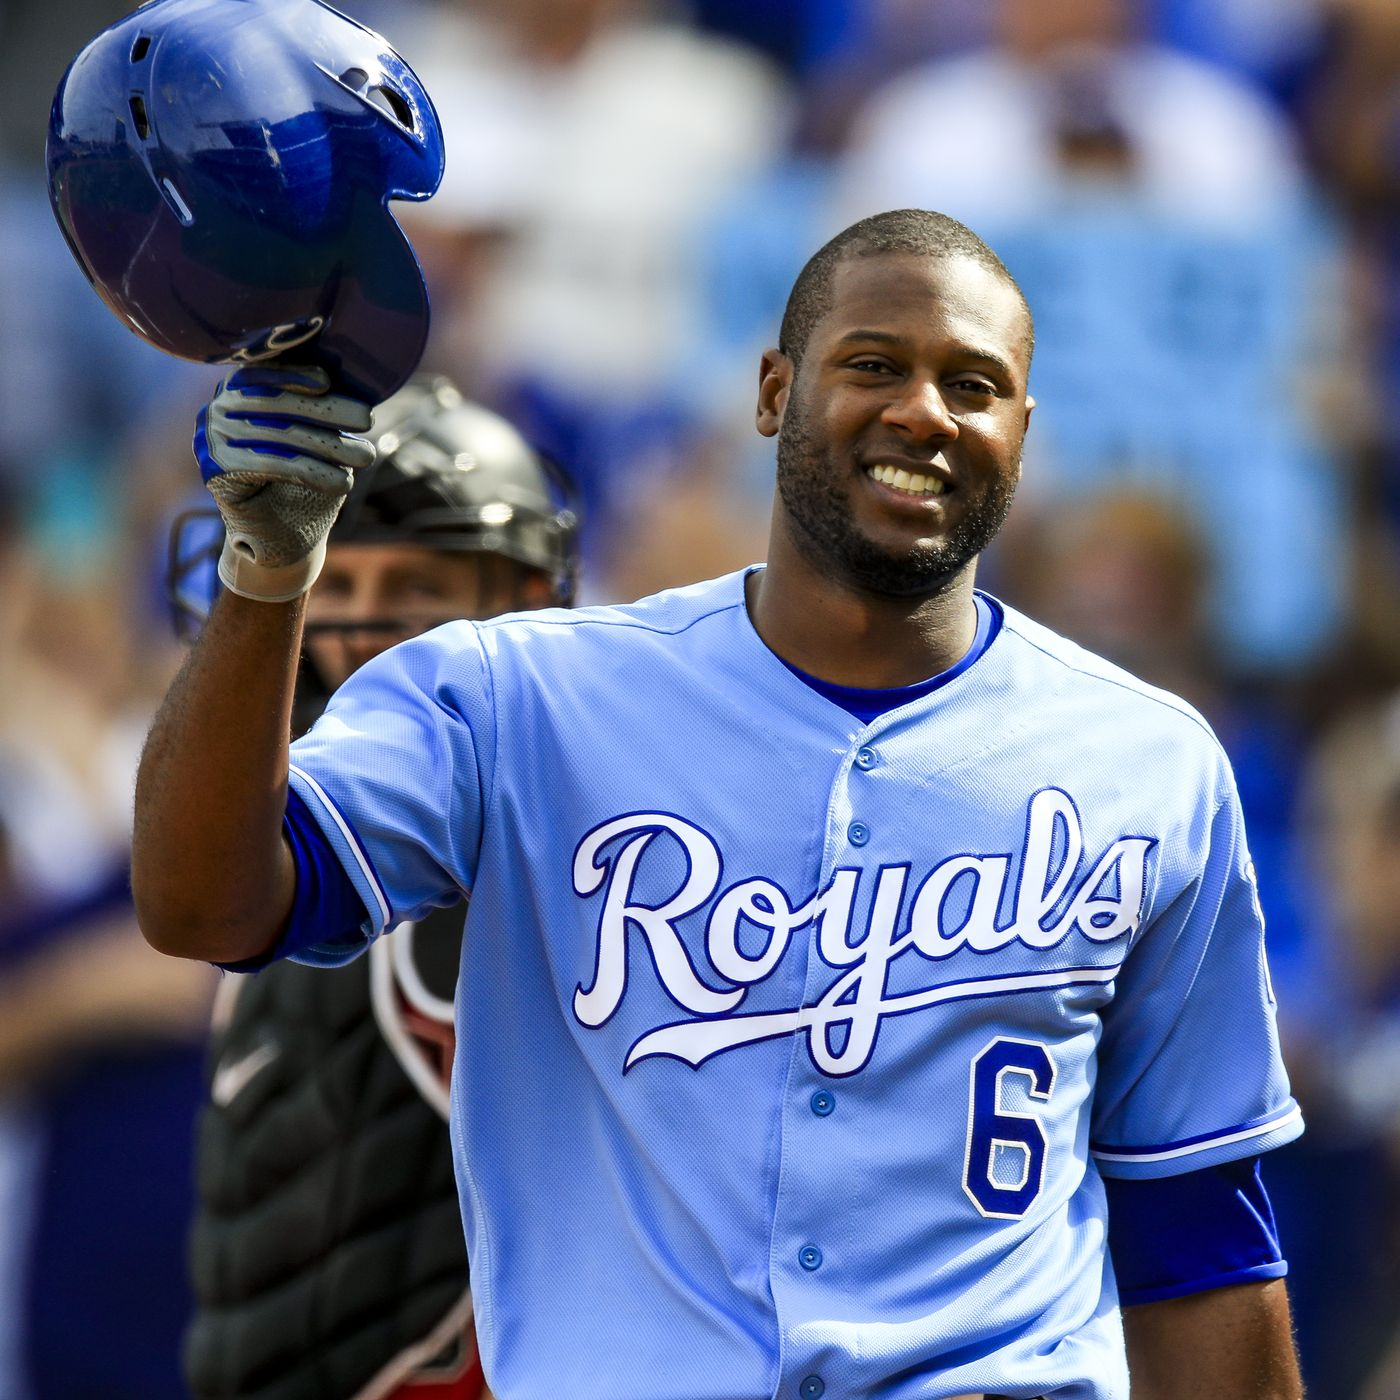 timeless design 5cec2 5910e Brewers sign Lorenzo Cain to a 5-year, $80 million deal ...